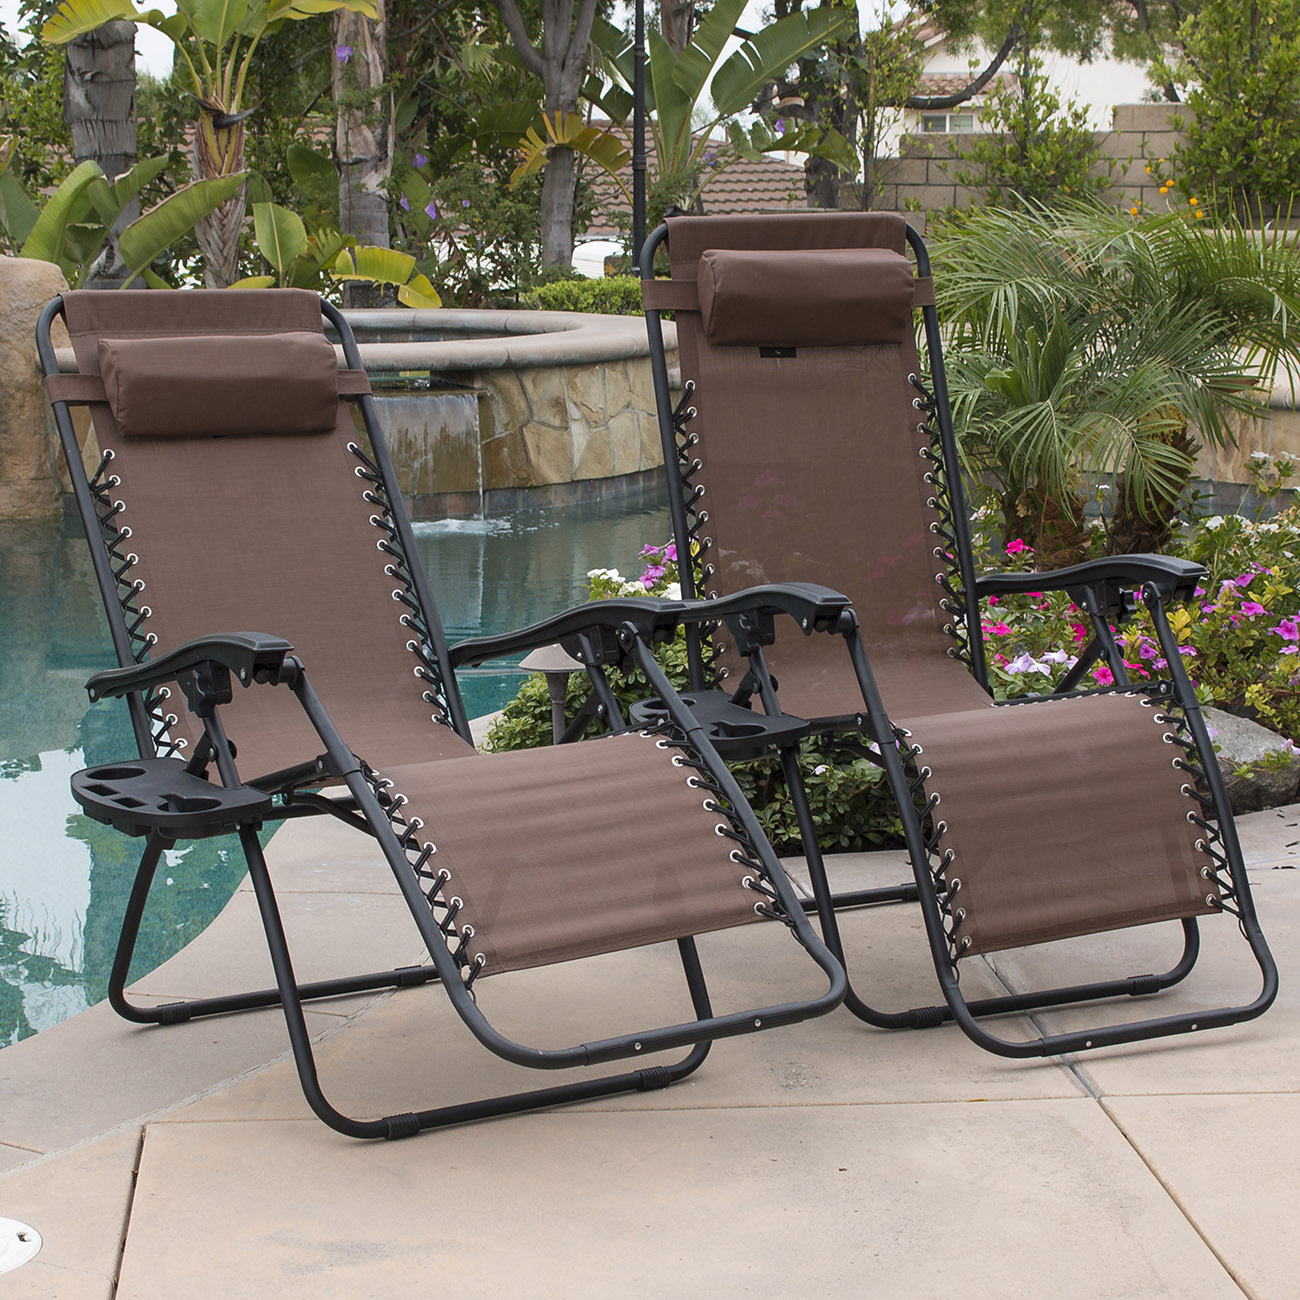 Camping Lounge Chair 2pc Brown Zero Gravity Lounge Chairs Recliner Outdoor